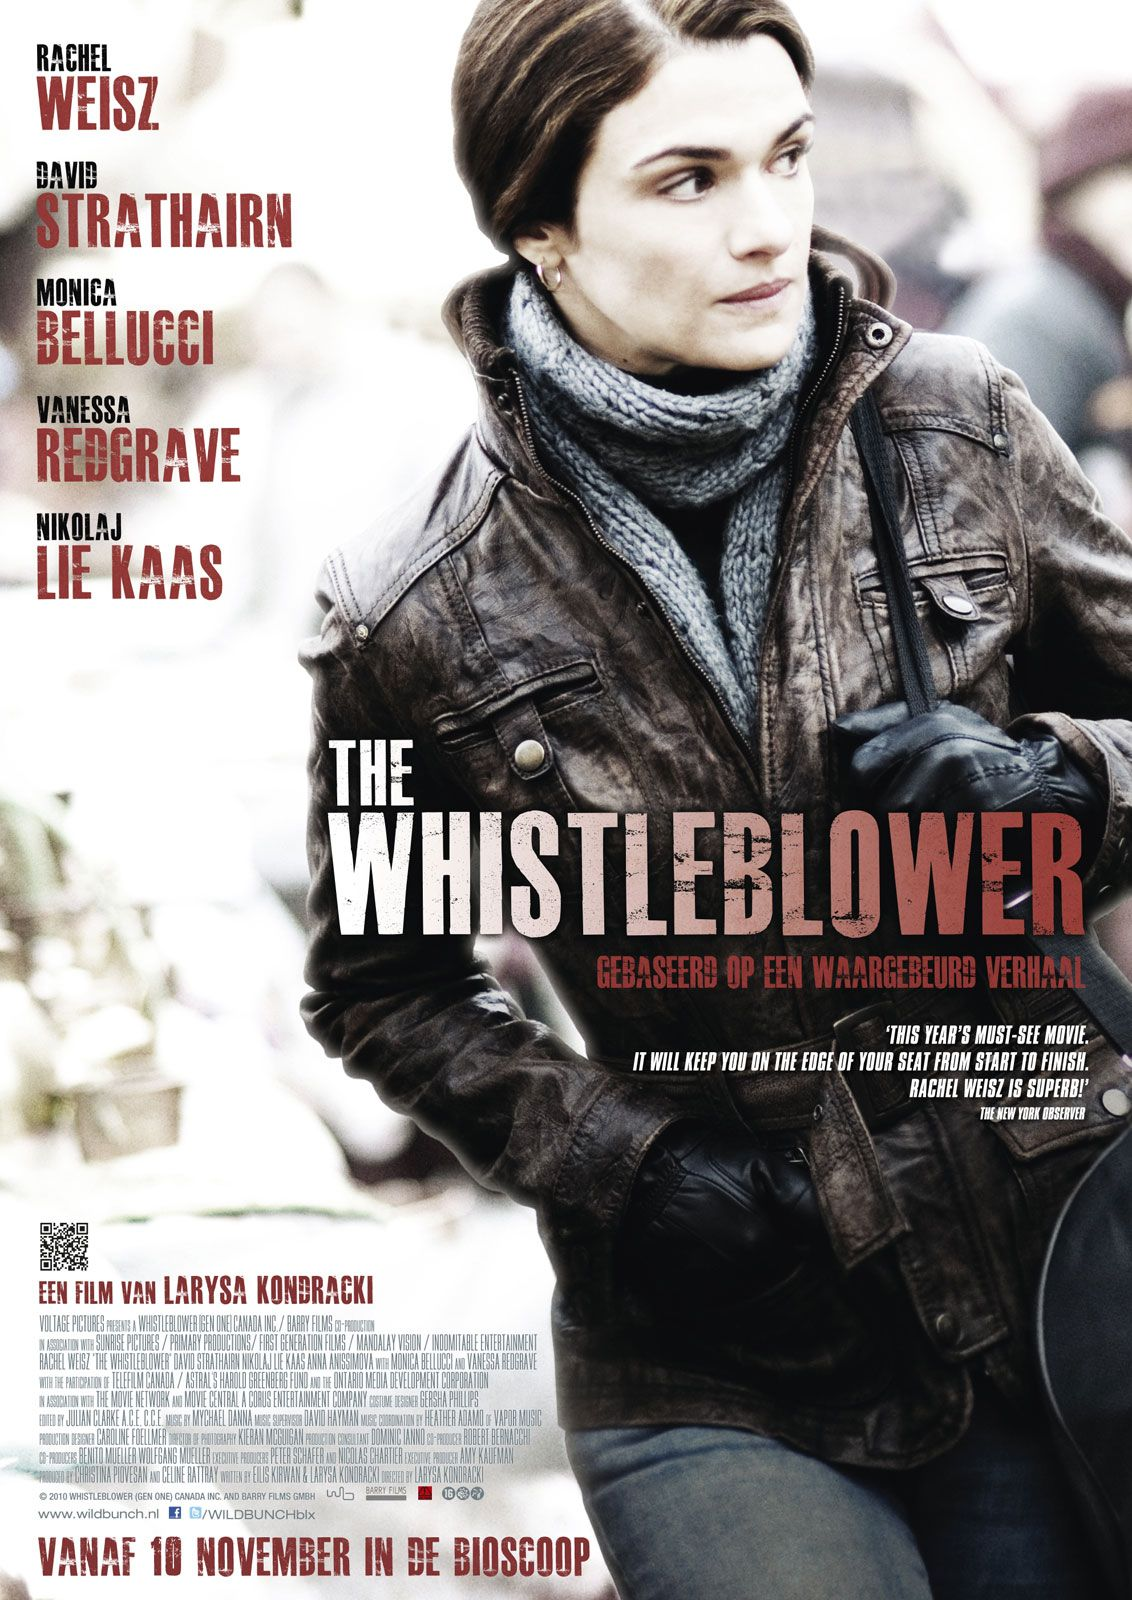 The Whistleblower 2010 Movie Full Movies Online Free